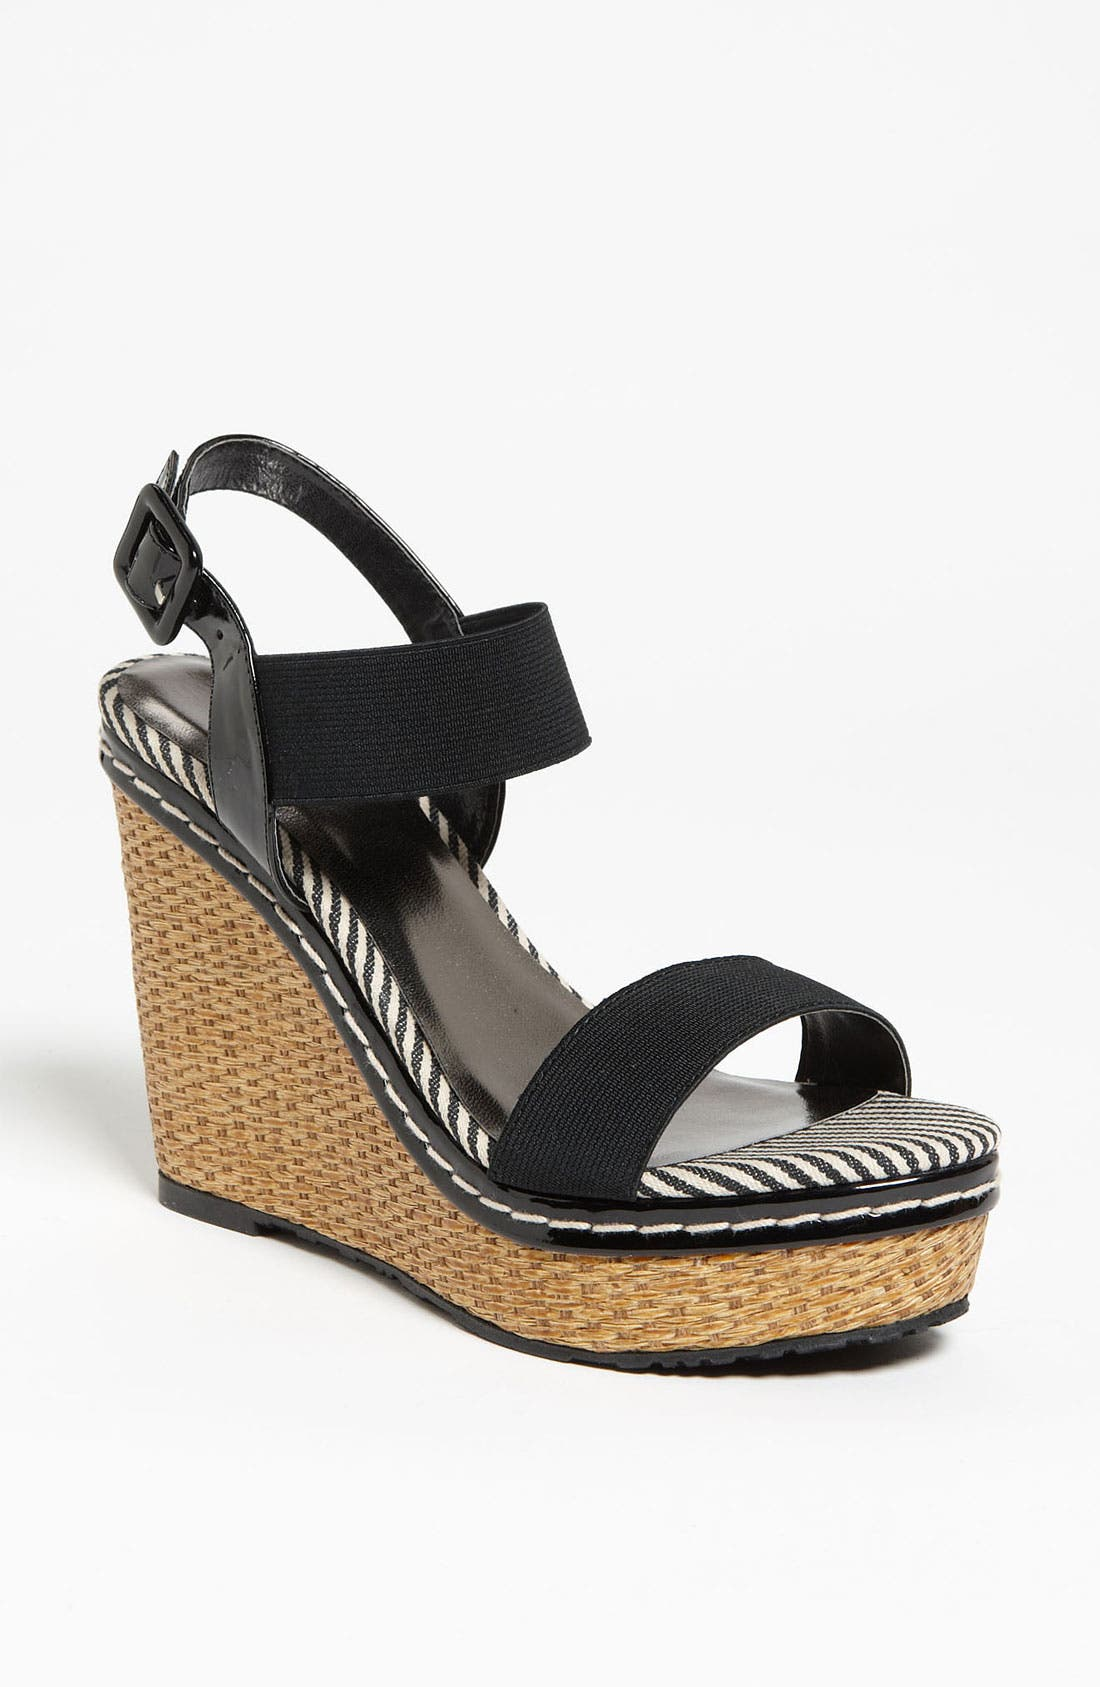 Alternate Image 1 Selected - Charles by Charles David 'Tapia' Wedge Sandal (Online Only)